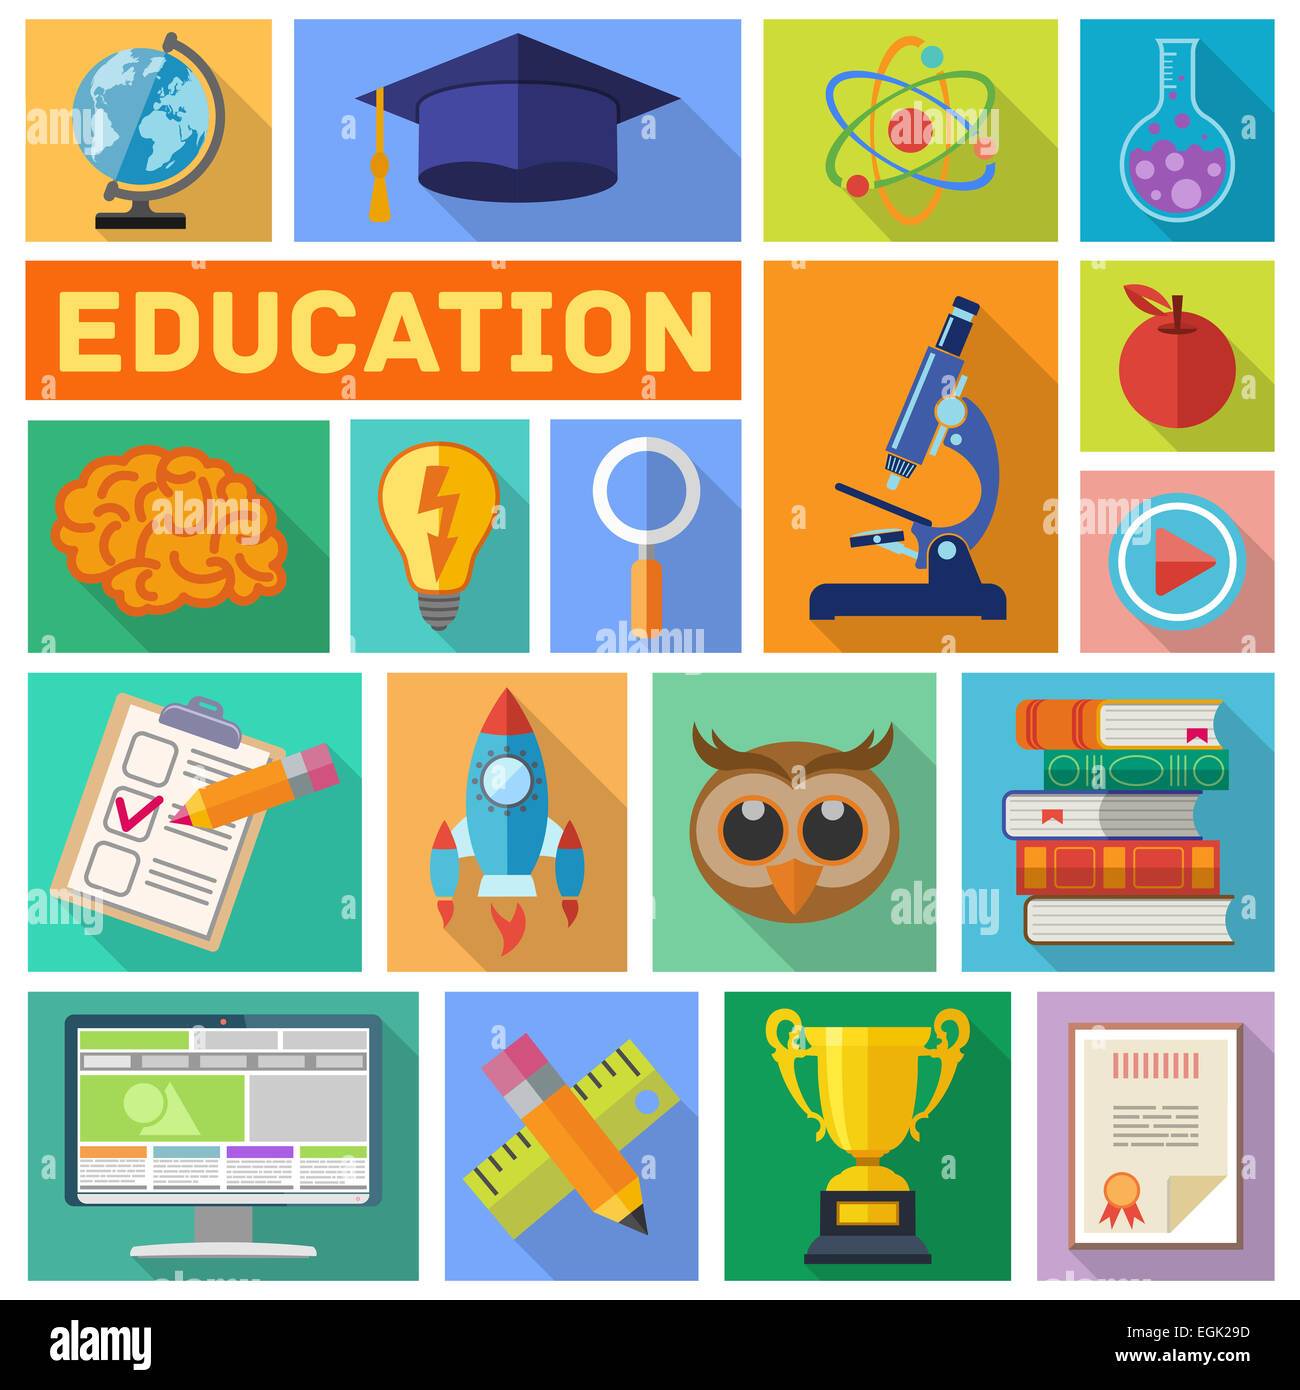 E learning poster designs - Online Education And E Learning Flat Icon Set For Flyer Poster Web Site With Long Shadow Illustration